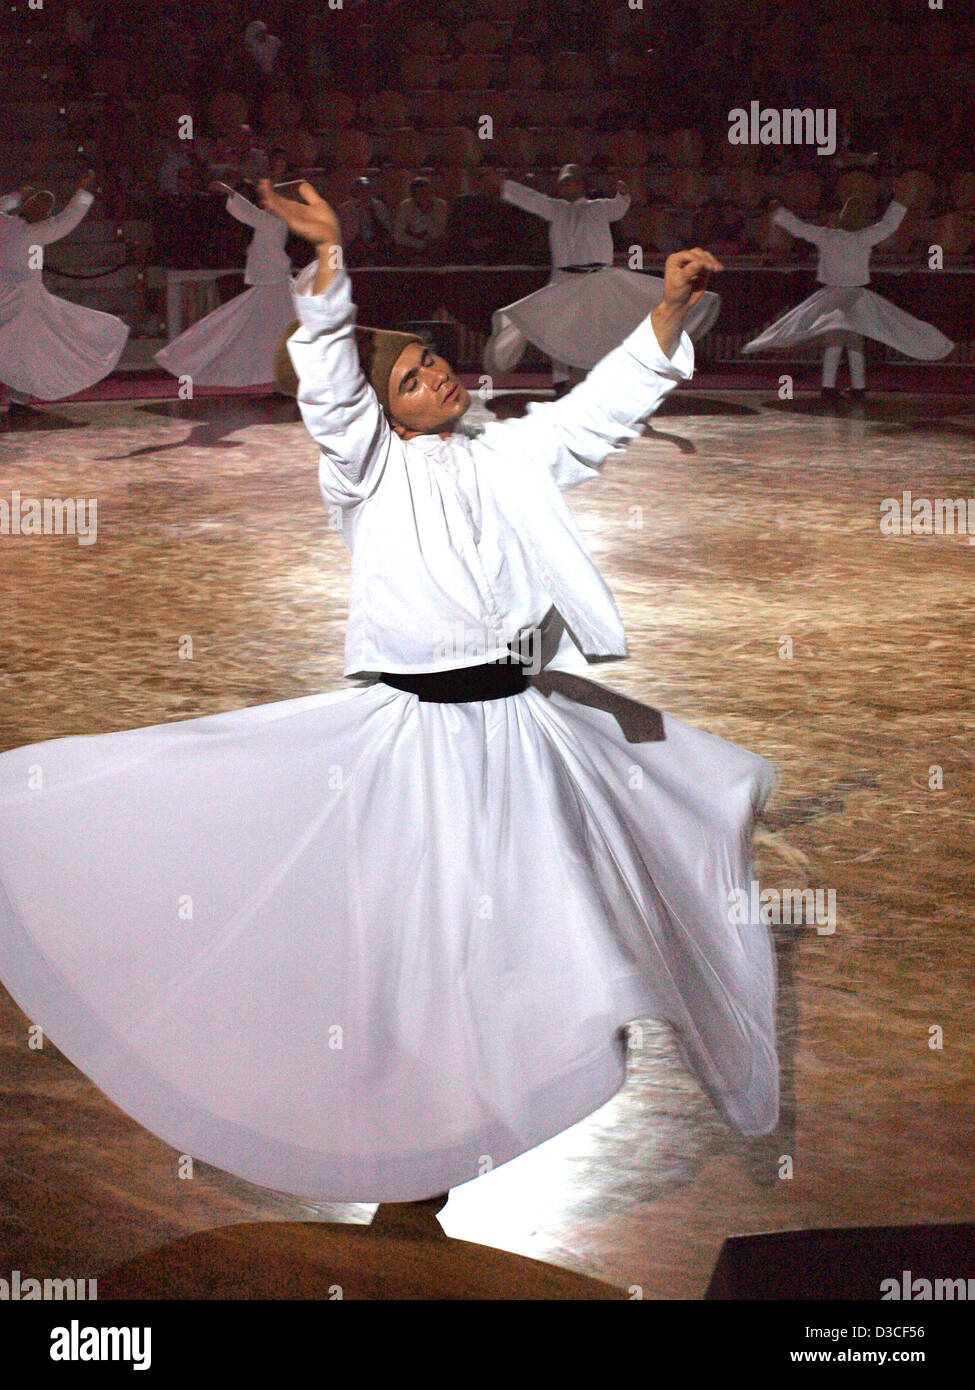 Sufi whirling dervishes in Konya, Turkey, during the annual Mevlana Festival, which takes place in early December. - Stock Image